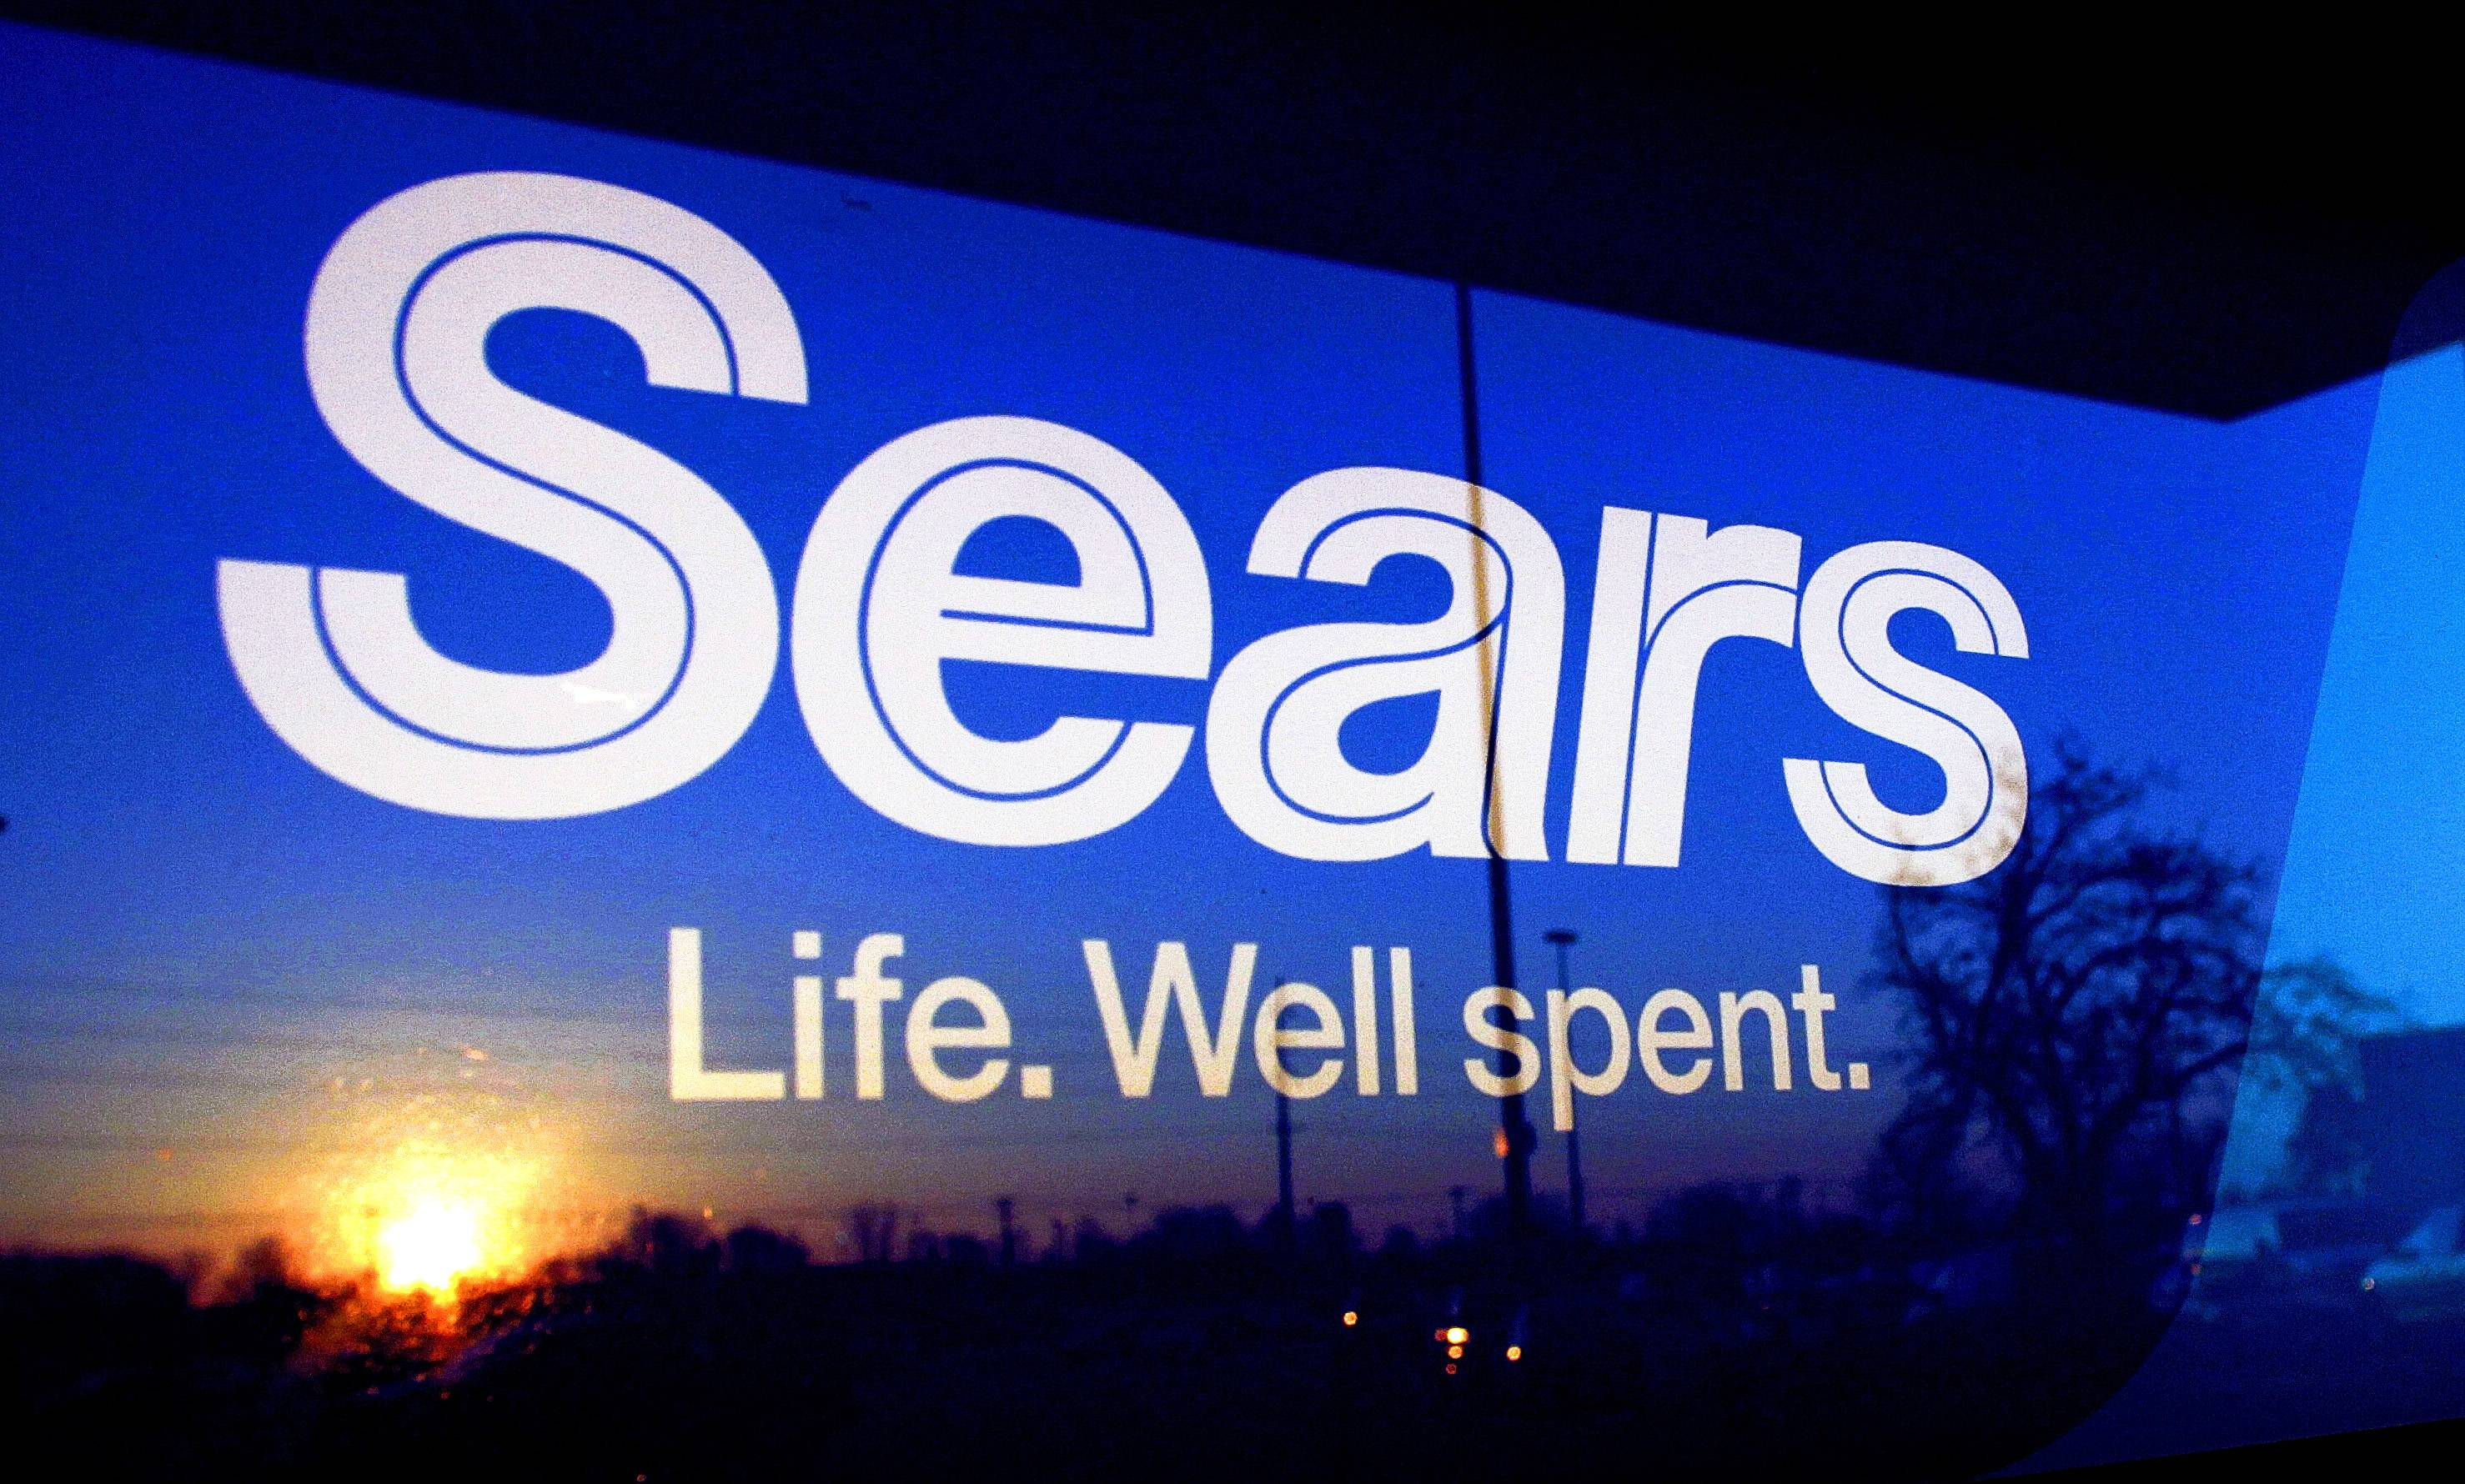 Continuing the decline of what was once the country's largest retailer, Sears this year closed stores across Illinois and most recently disclosed the Golf Mill store will close.